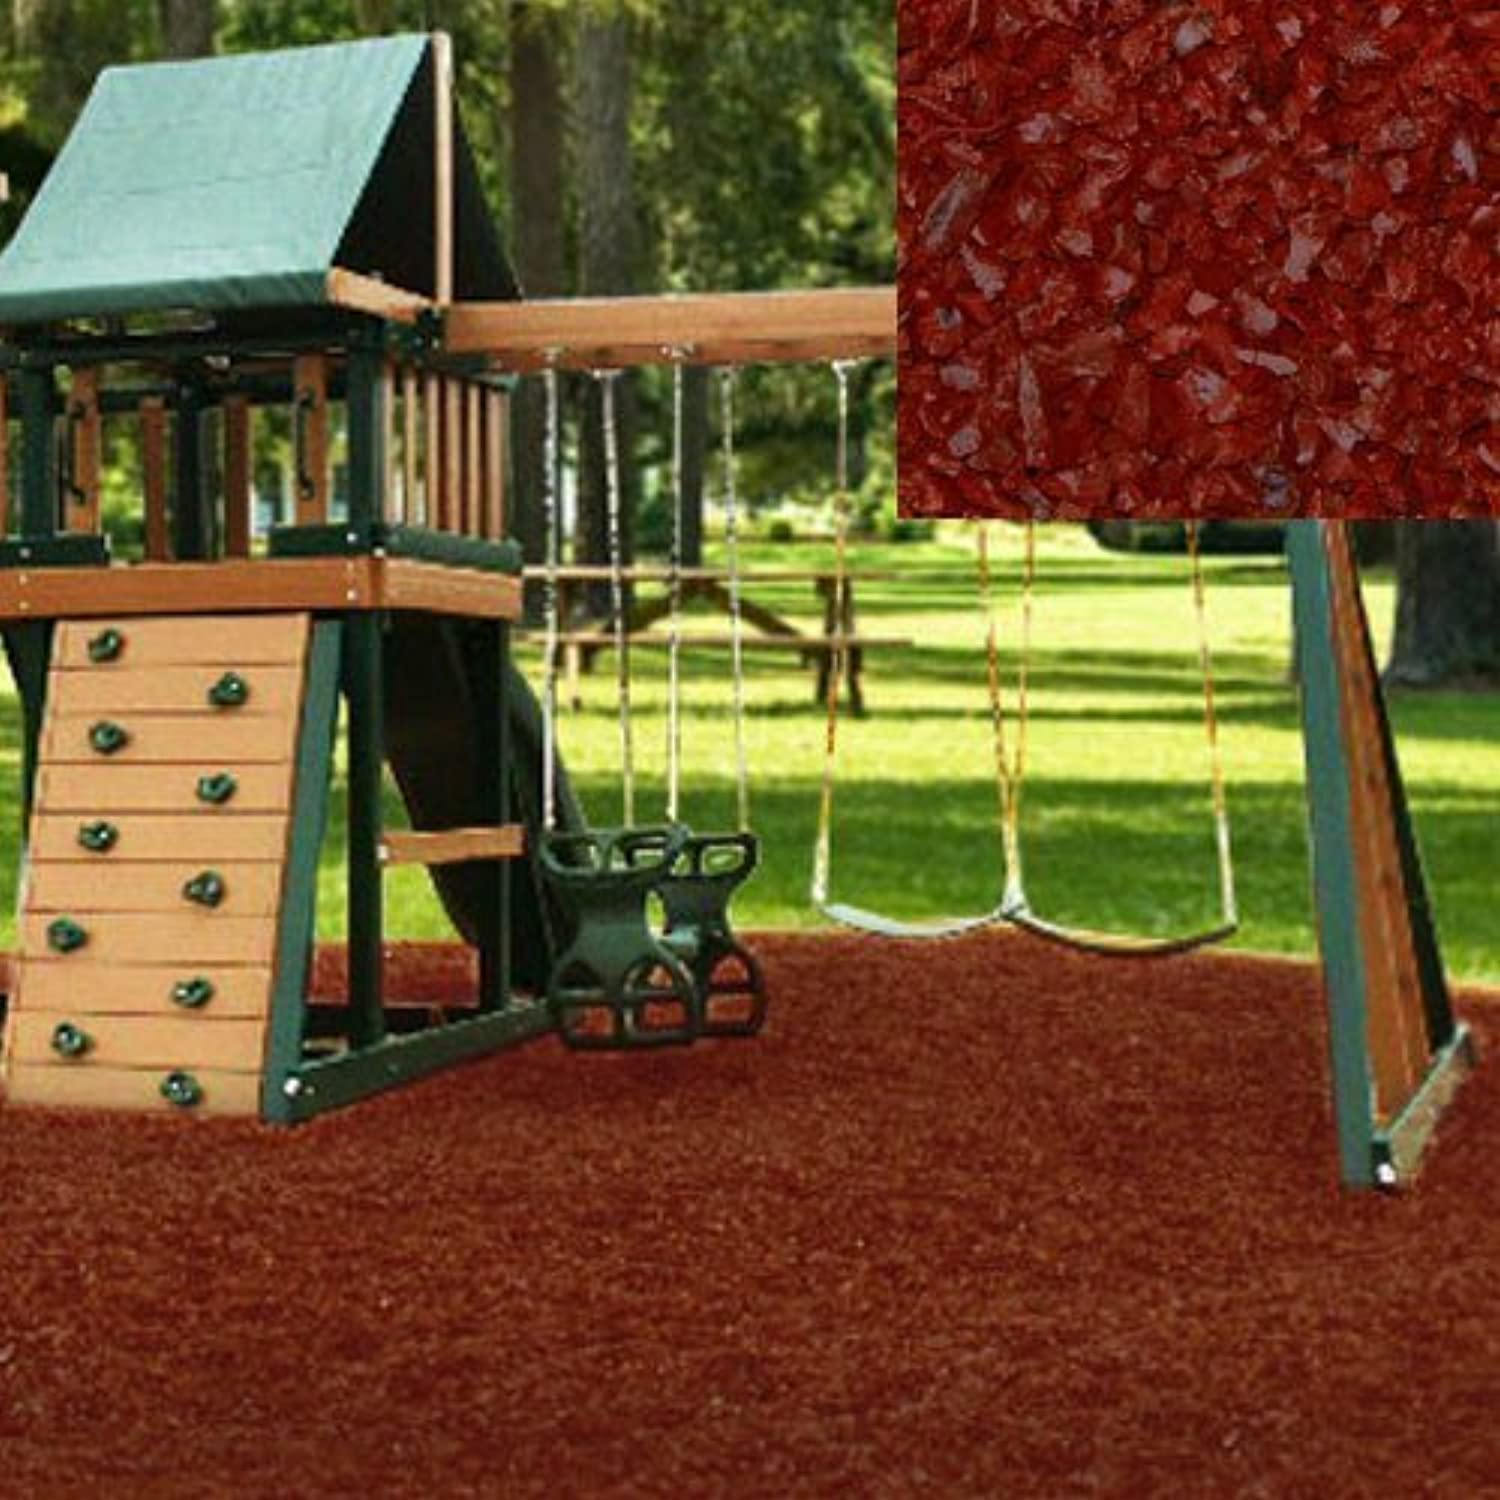 Swing Set Playground Rubber Mulch 75 Cu.Ft. PalletBrick Red by KIDWISE